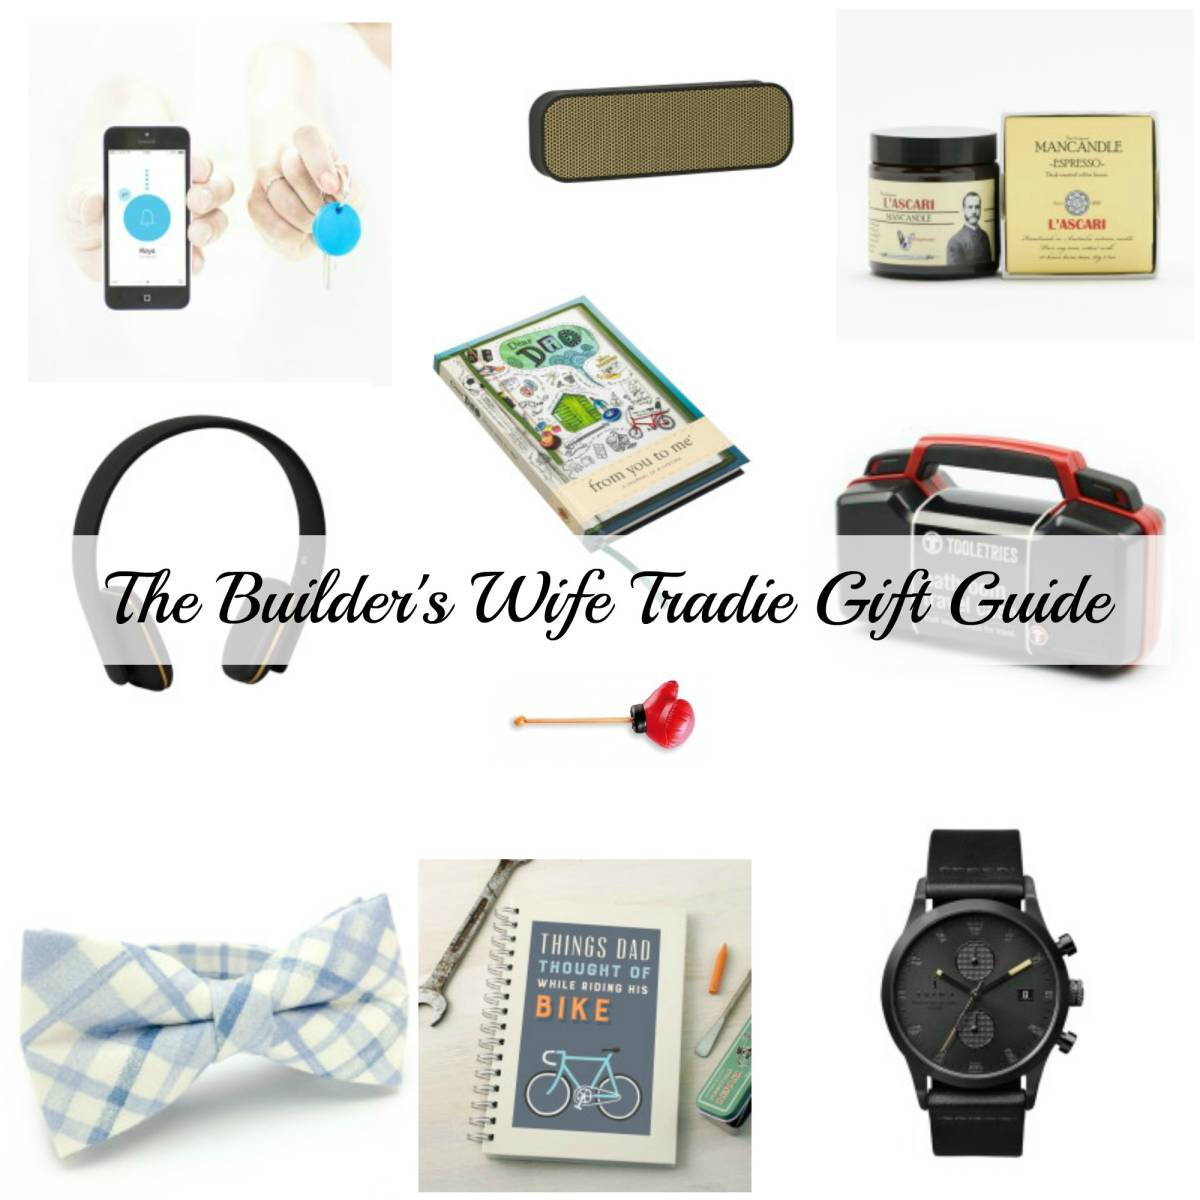 A Christmas Gift Guide For A Tradie